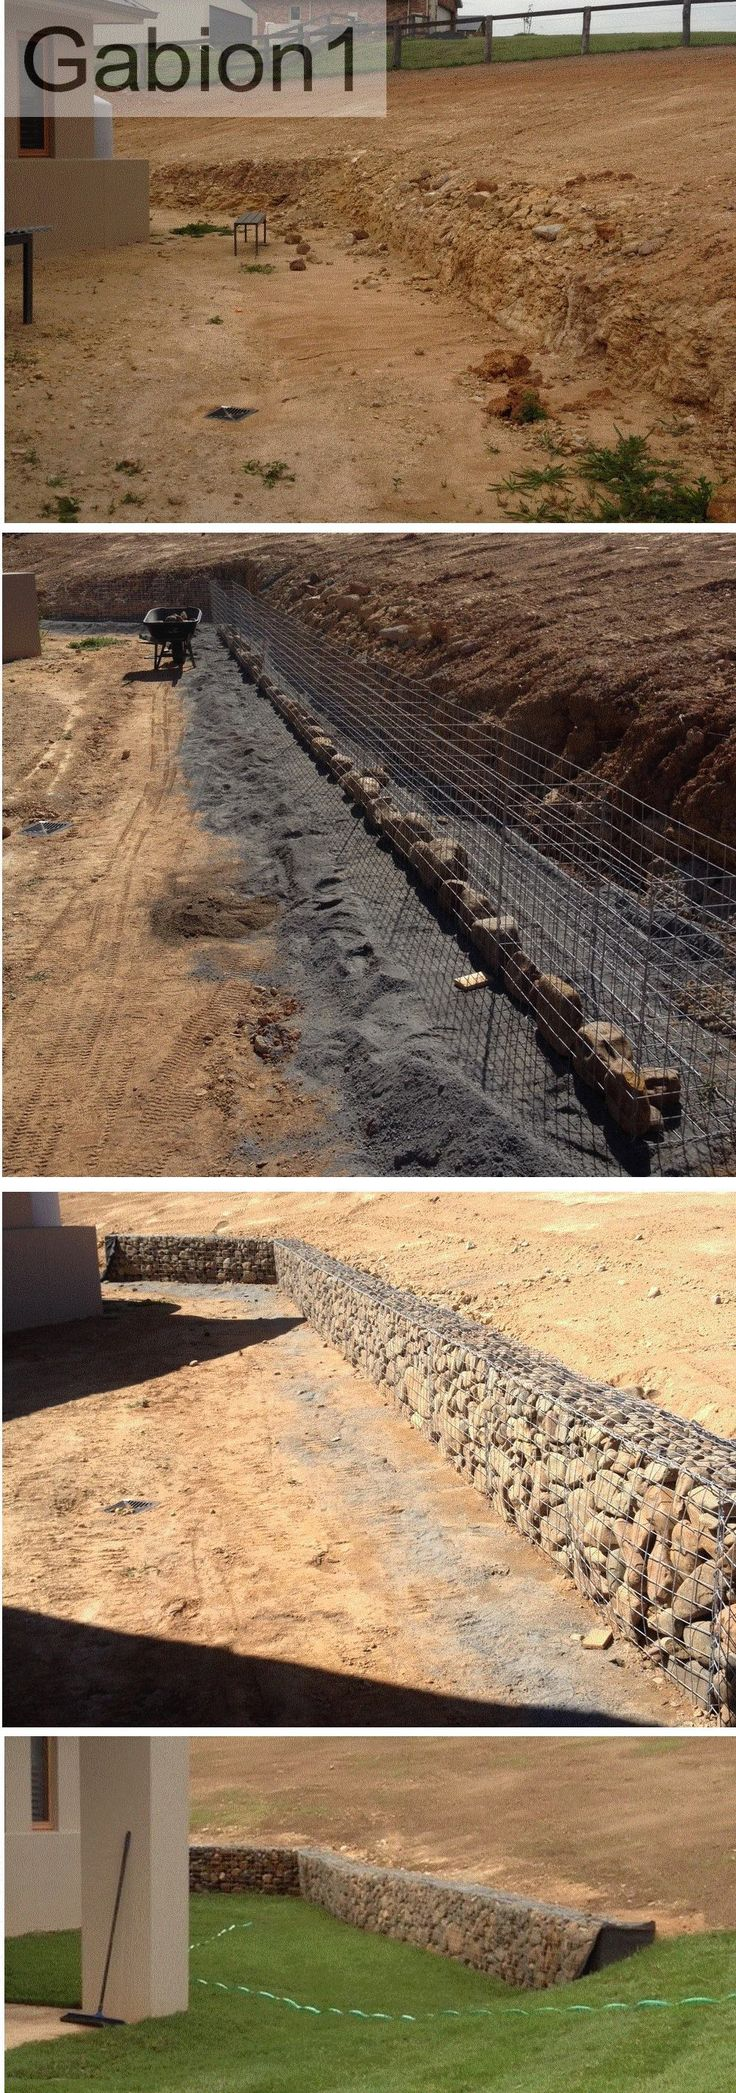 gabion retaining wall before, during and after http://www.gabion1.com.au